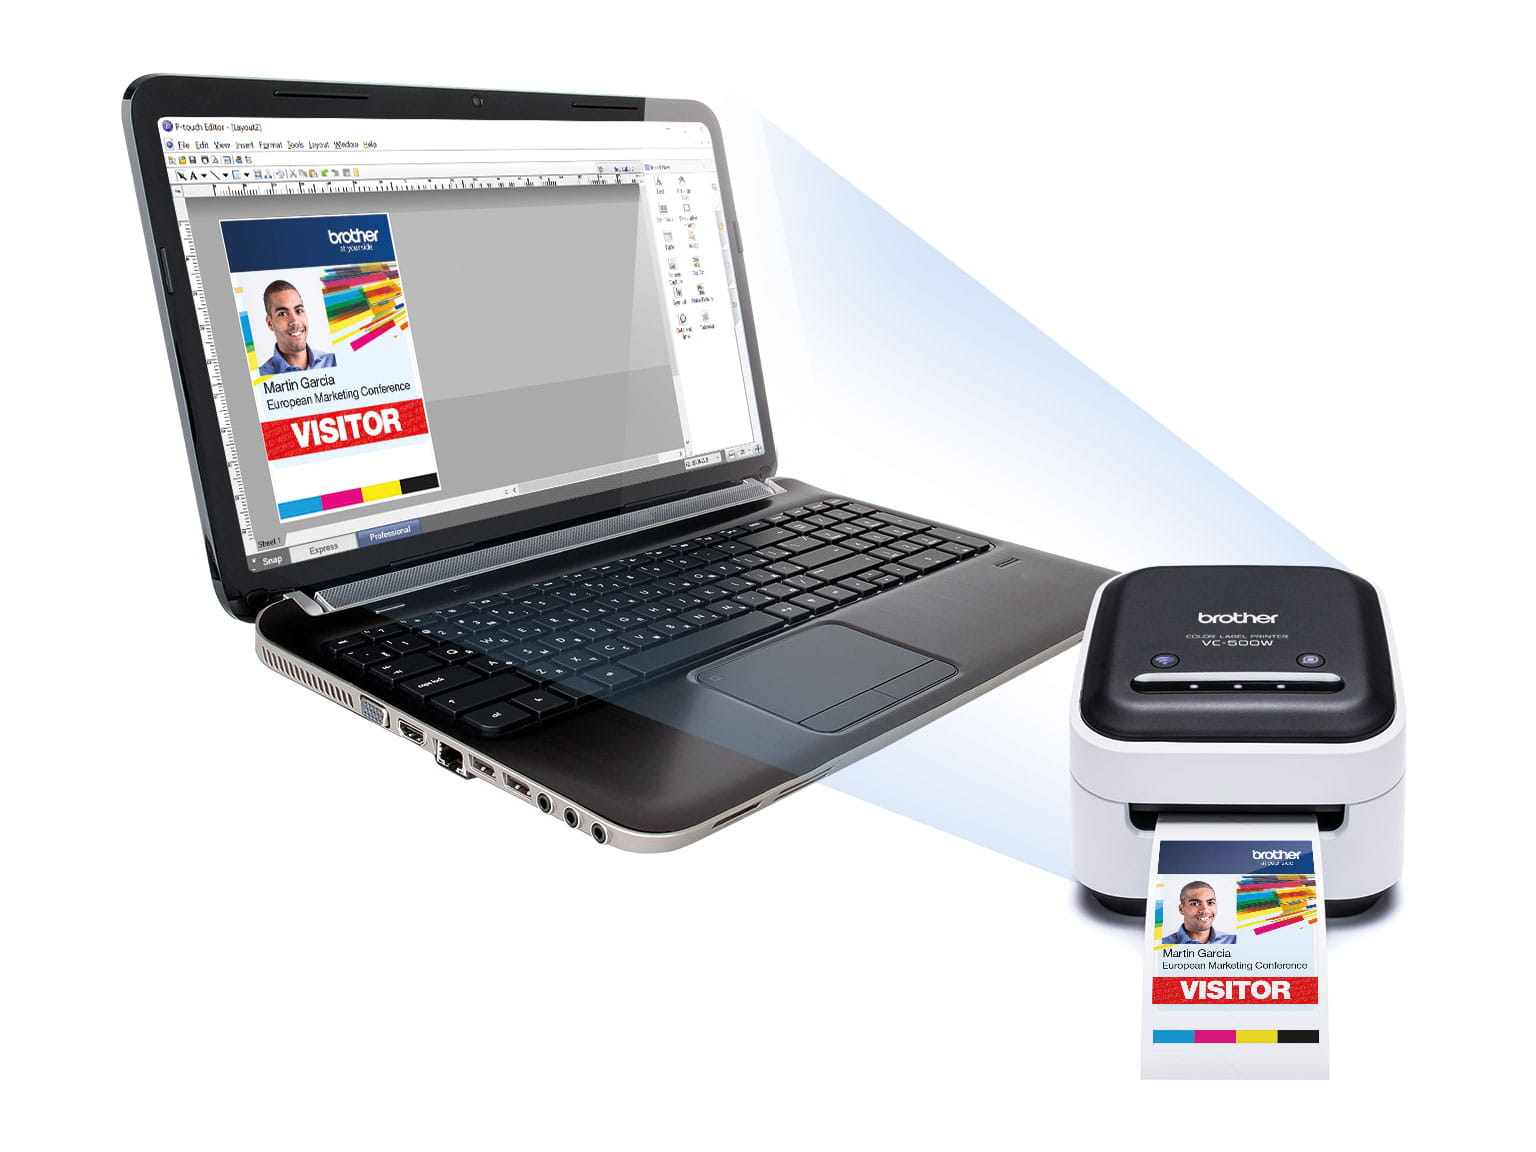 Brother VC-500W colour label printer and P-touch editor software on a laptop